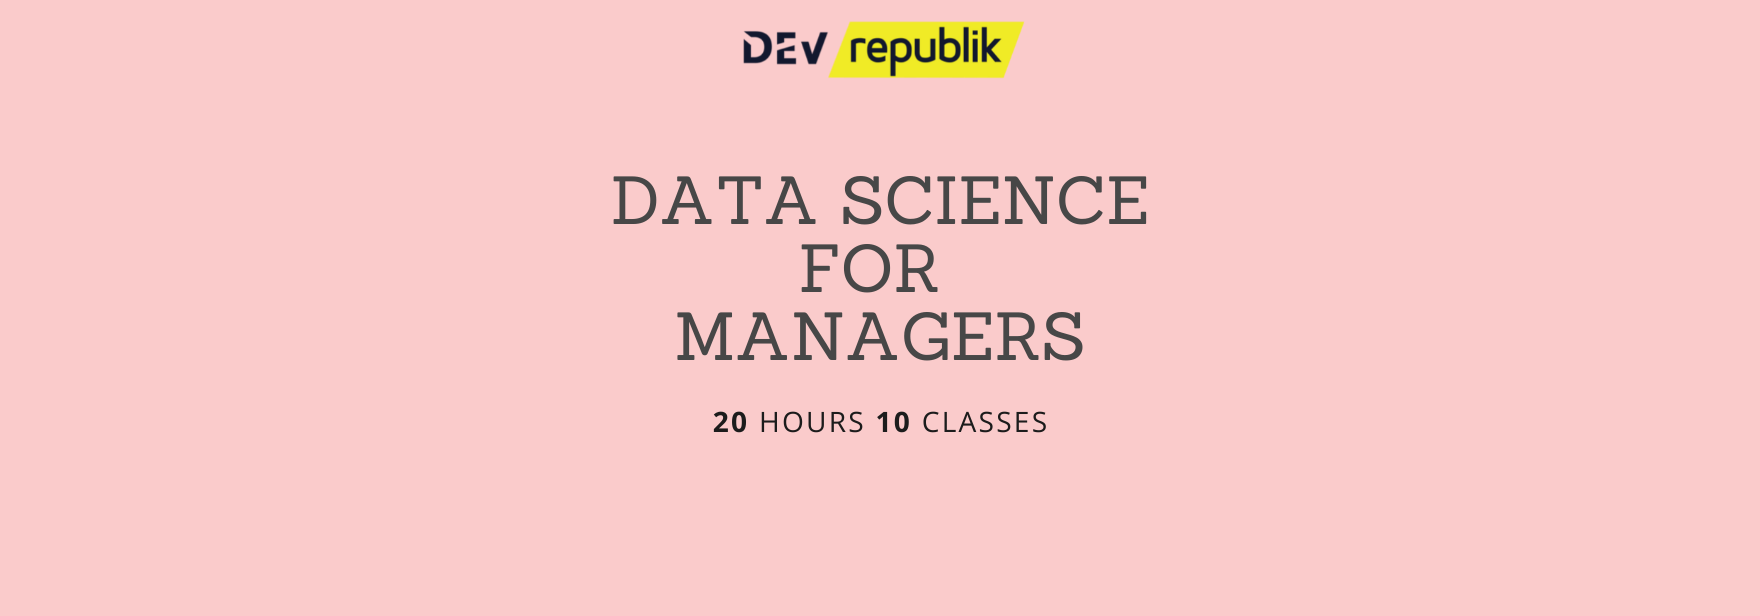 Copy of data science for managers course website